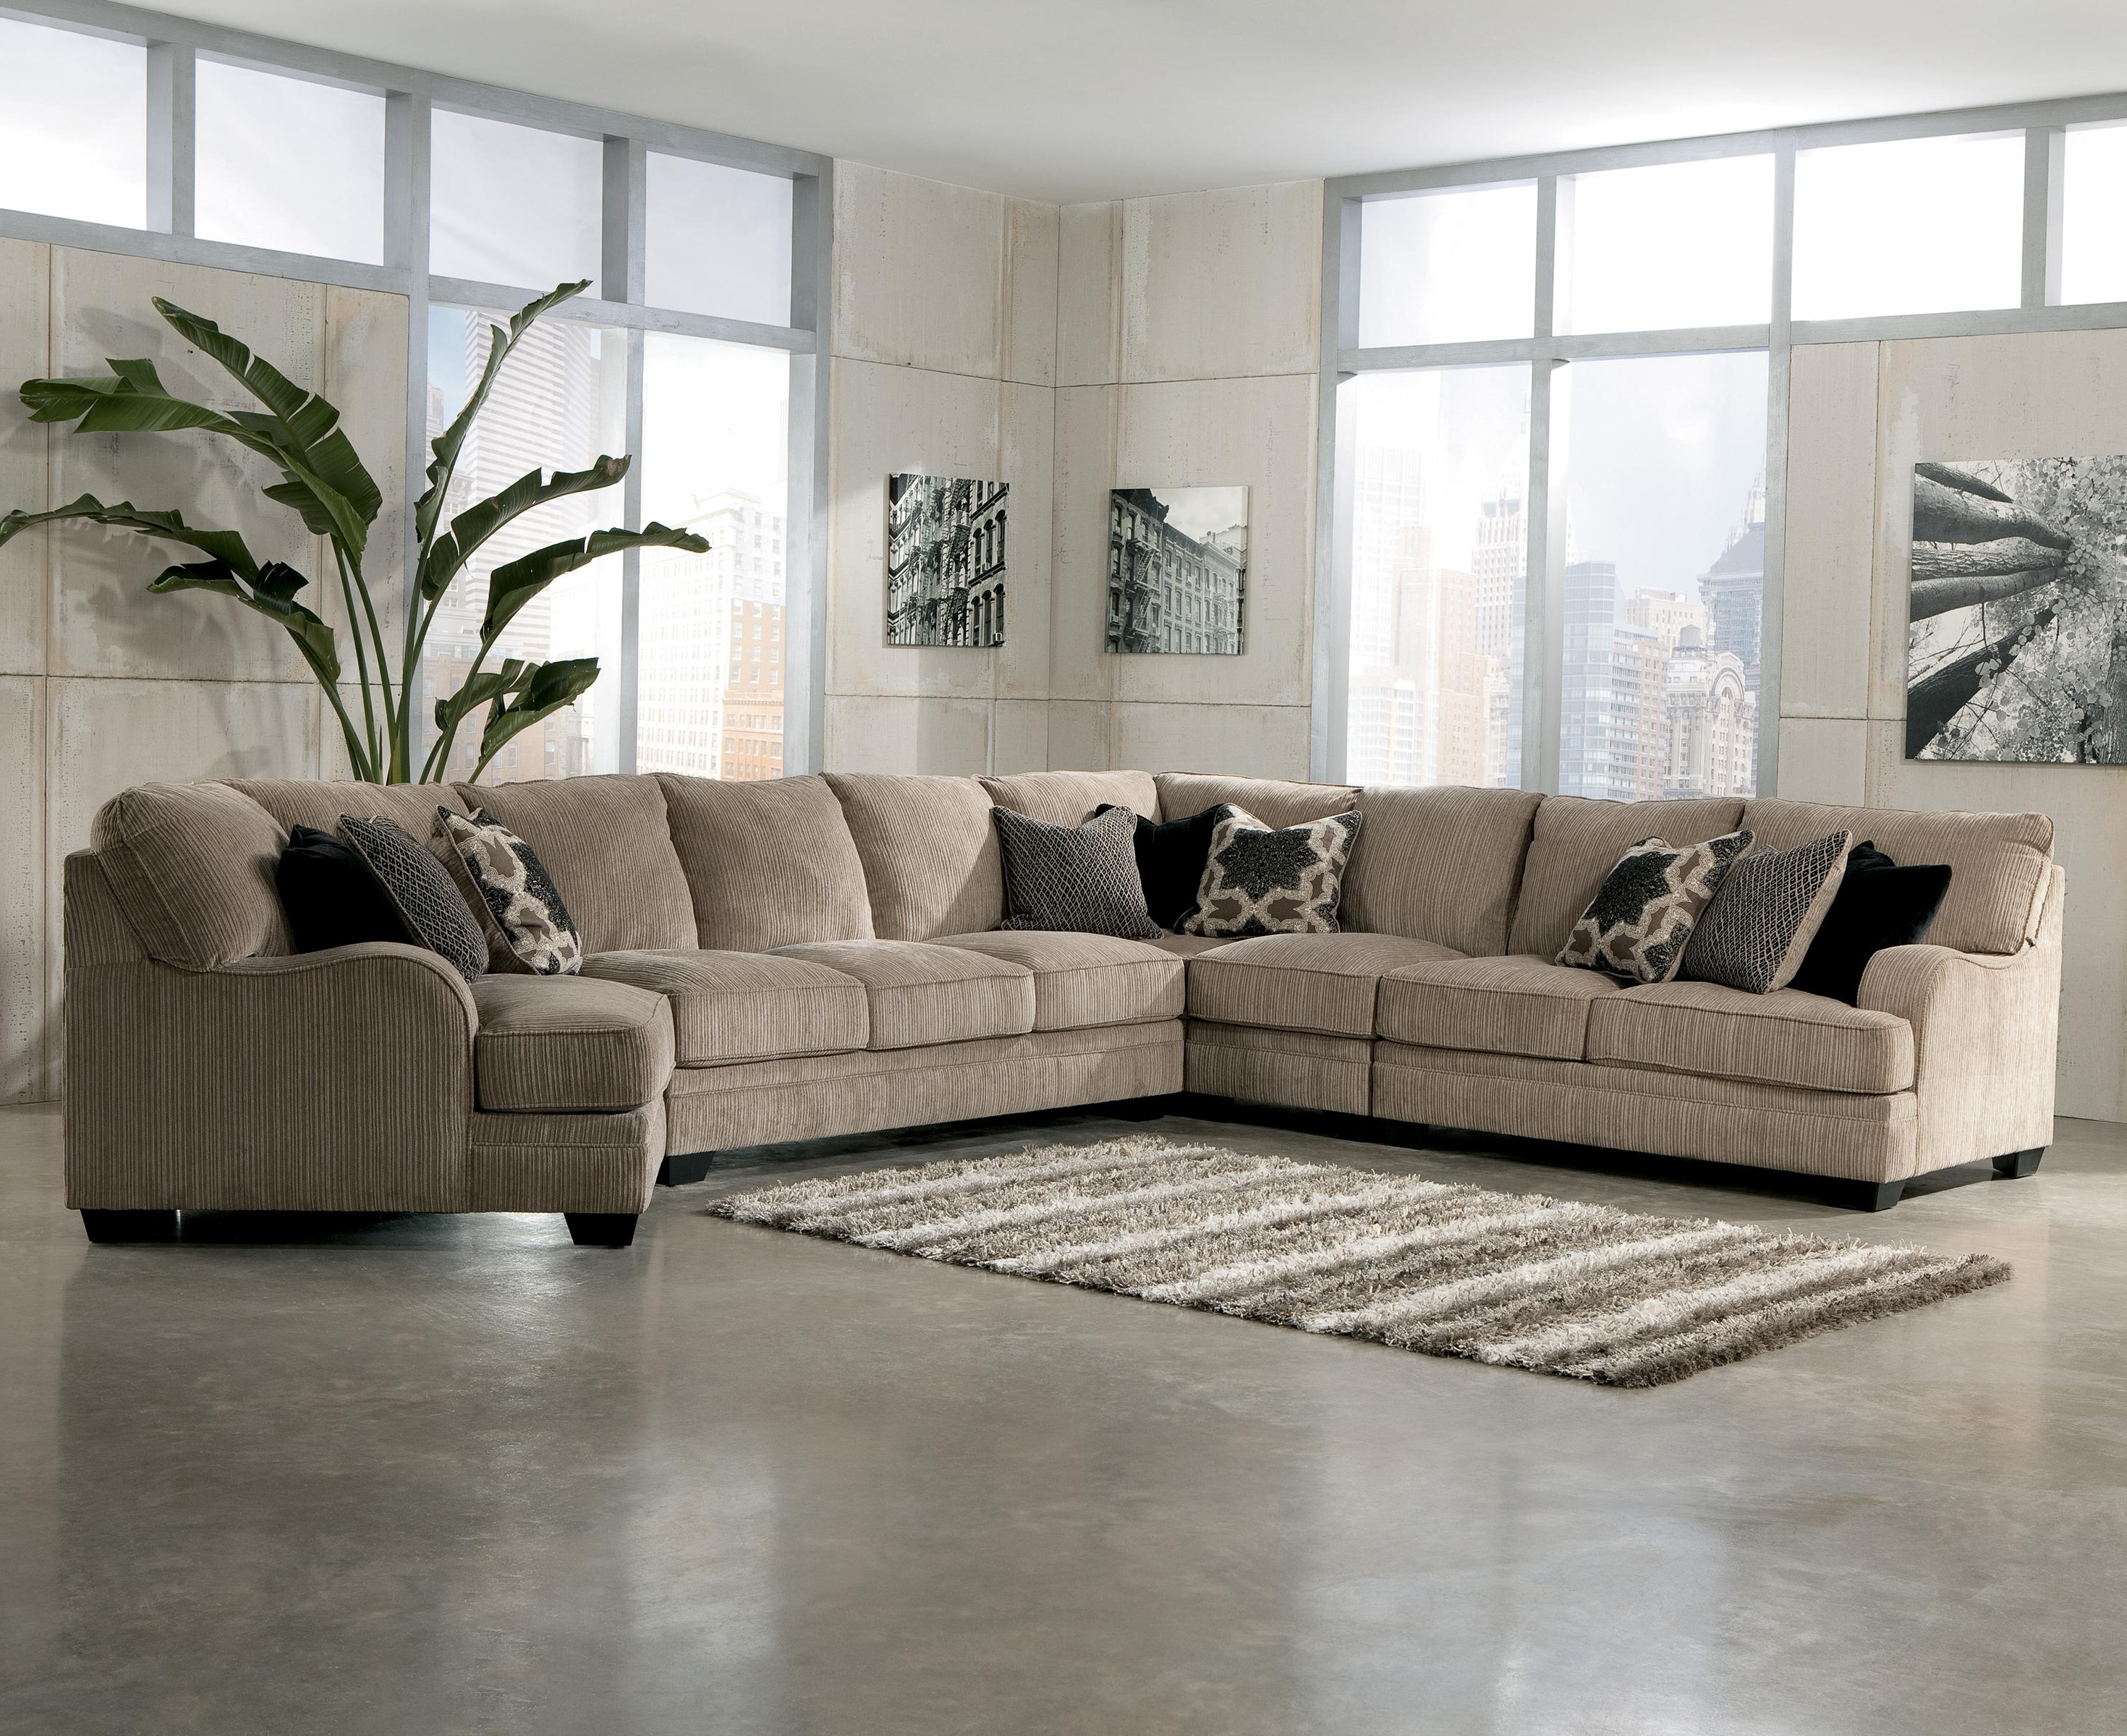 Best And Newest Blaine 4 Piece Sectionals Intended For Signature Designashley Katisha – Platinum 4 Piece Sectional Sofa (View 5 of 20)